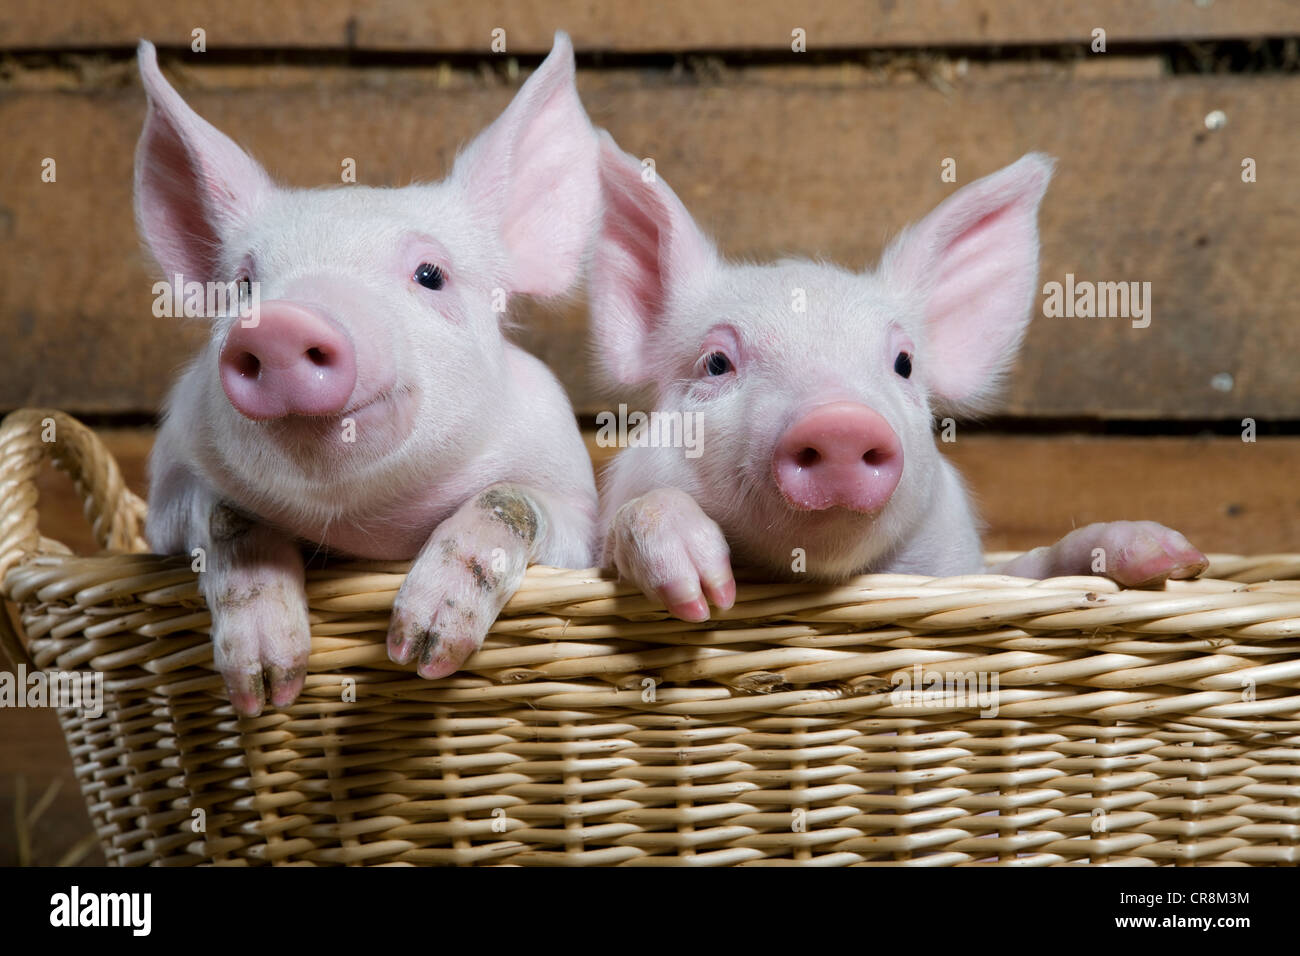 Two piglets in basket, close up - Stock Image